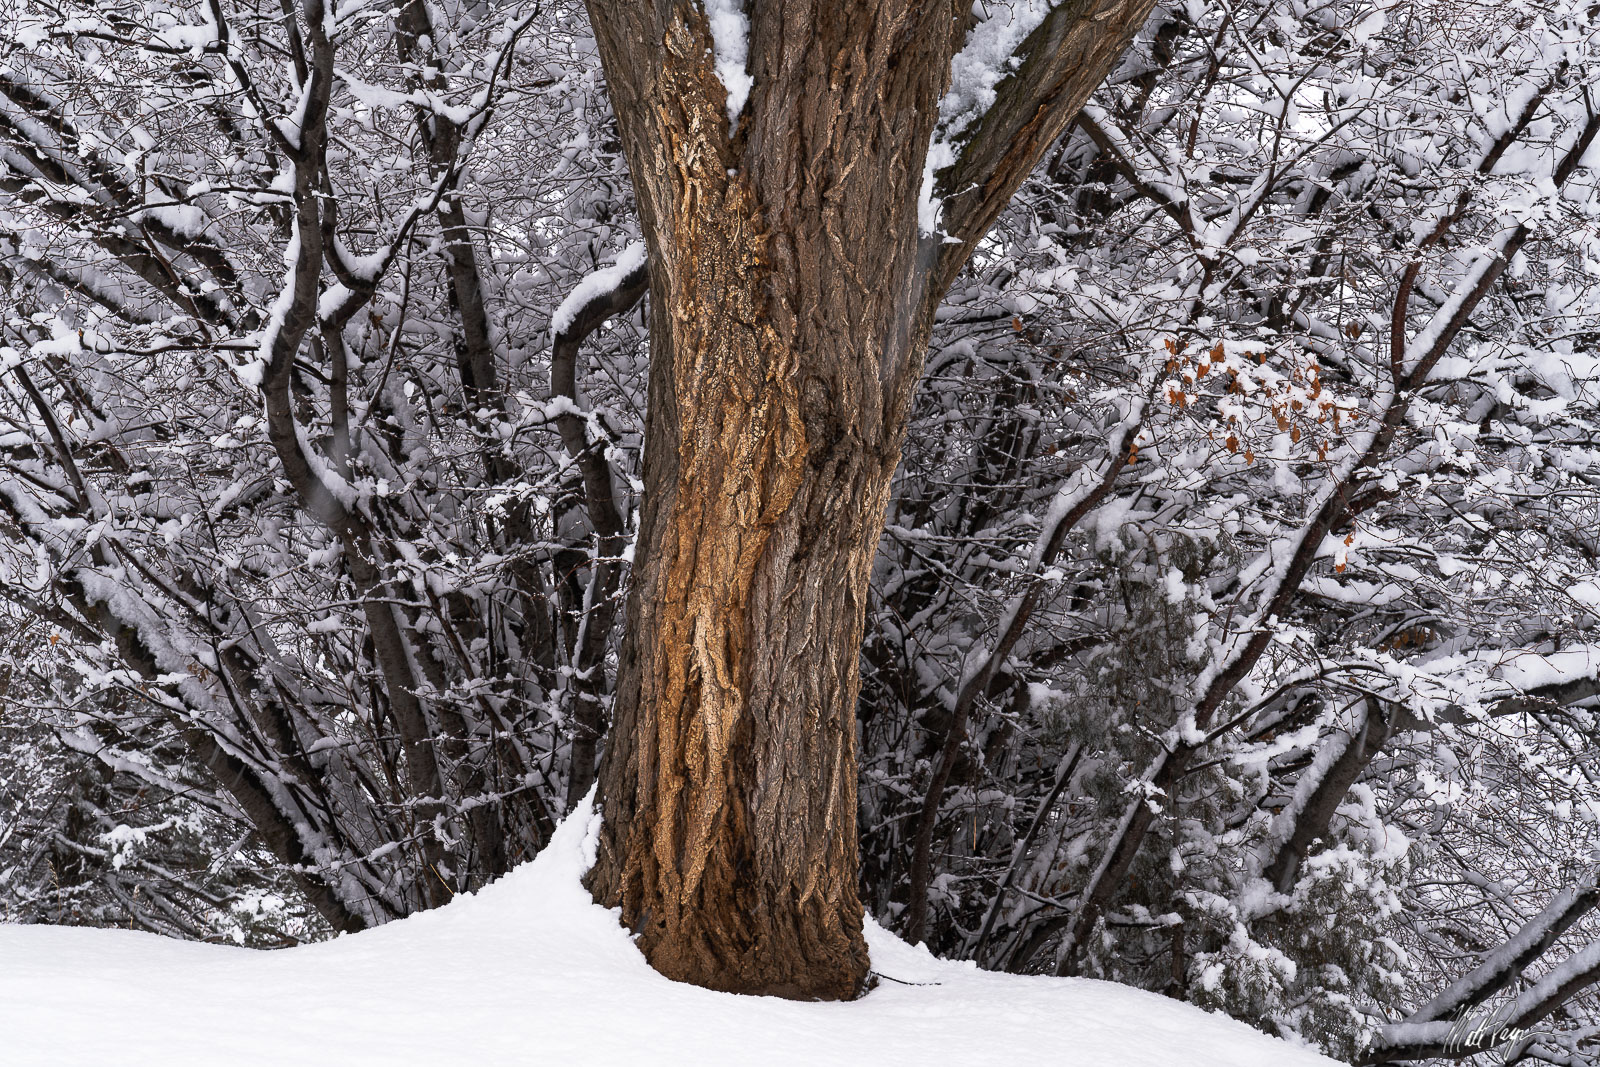 A snow storm near my home in Durango, Colorado compelled me to venture out on a local nature trail to see what I could discover...